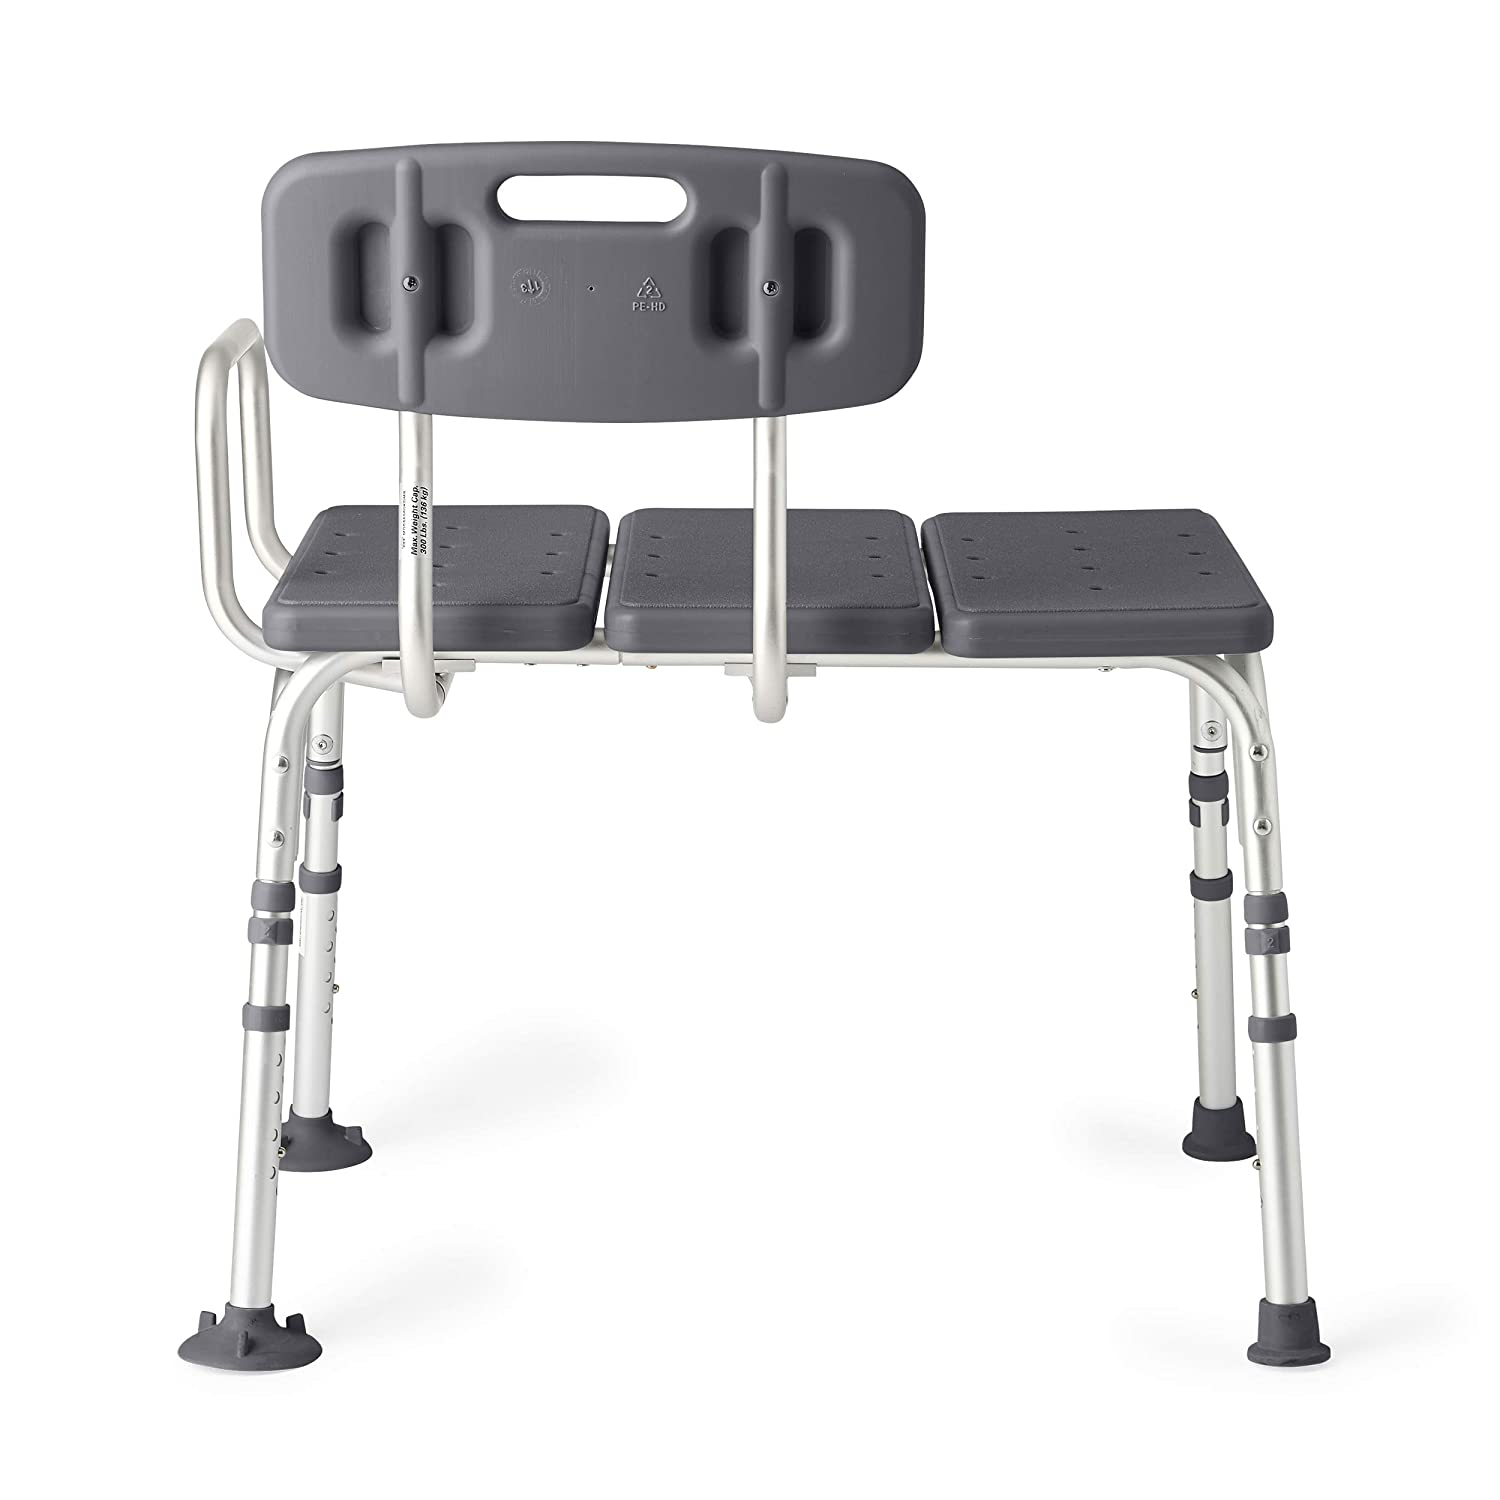 Amazon.com: Medline Knockdown Transfer Bath Bench with Back, Microban Antimicrobial Protection, 350lb Weight Capacity, Grey: Health & Personal Care